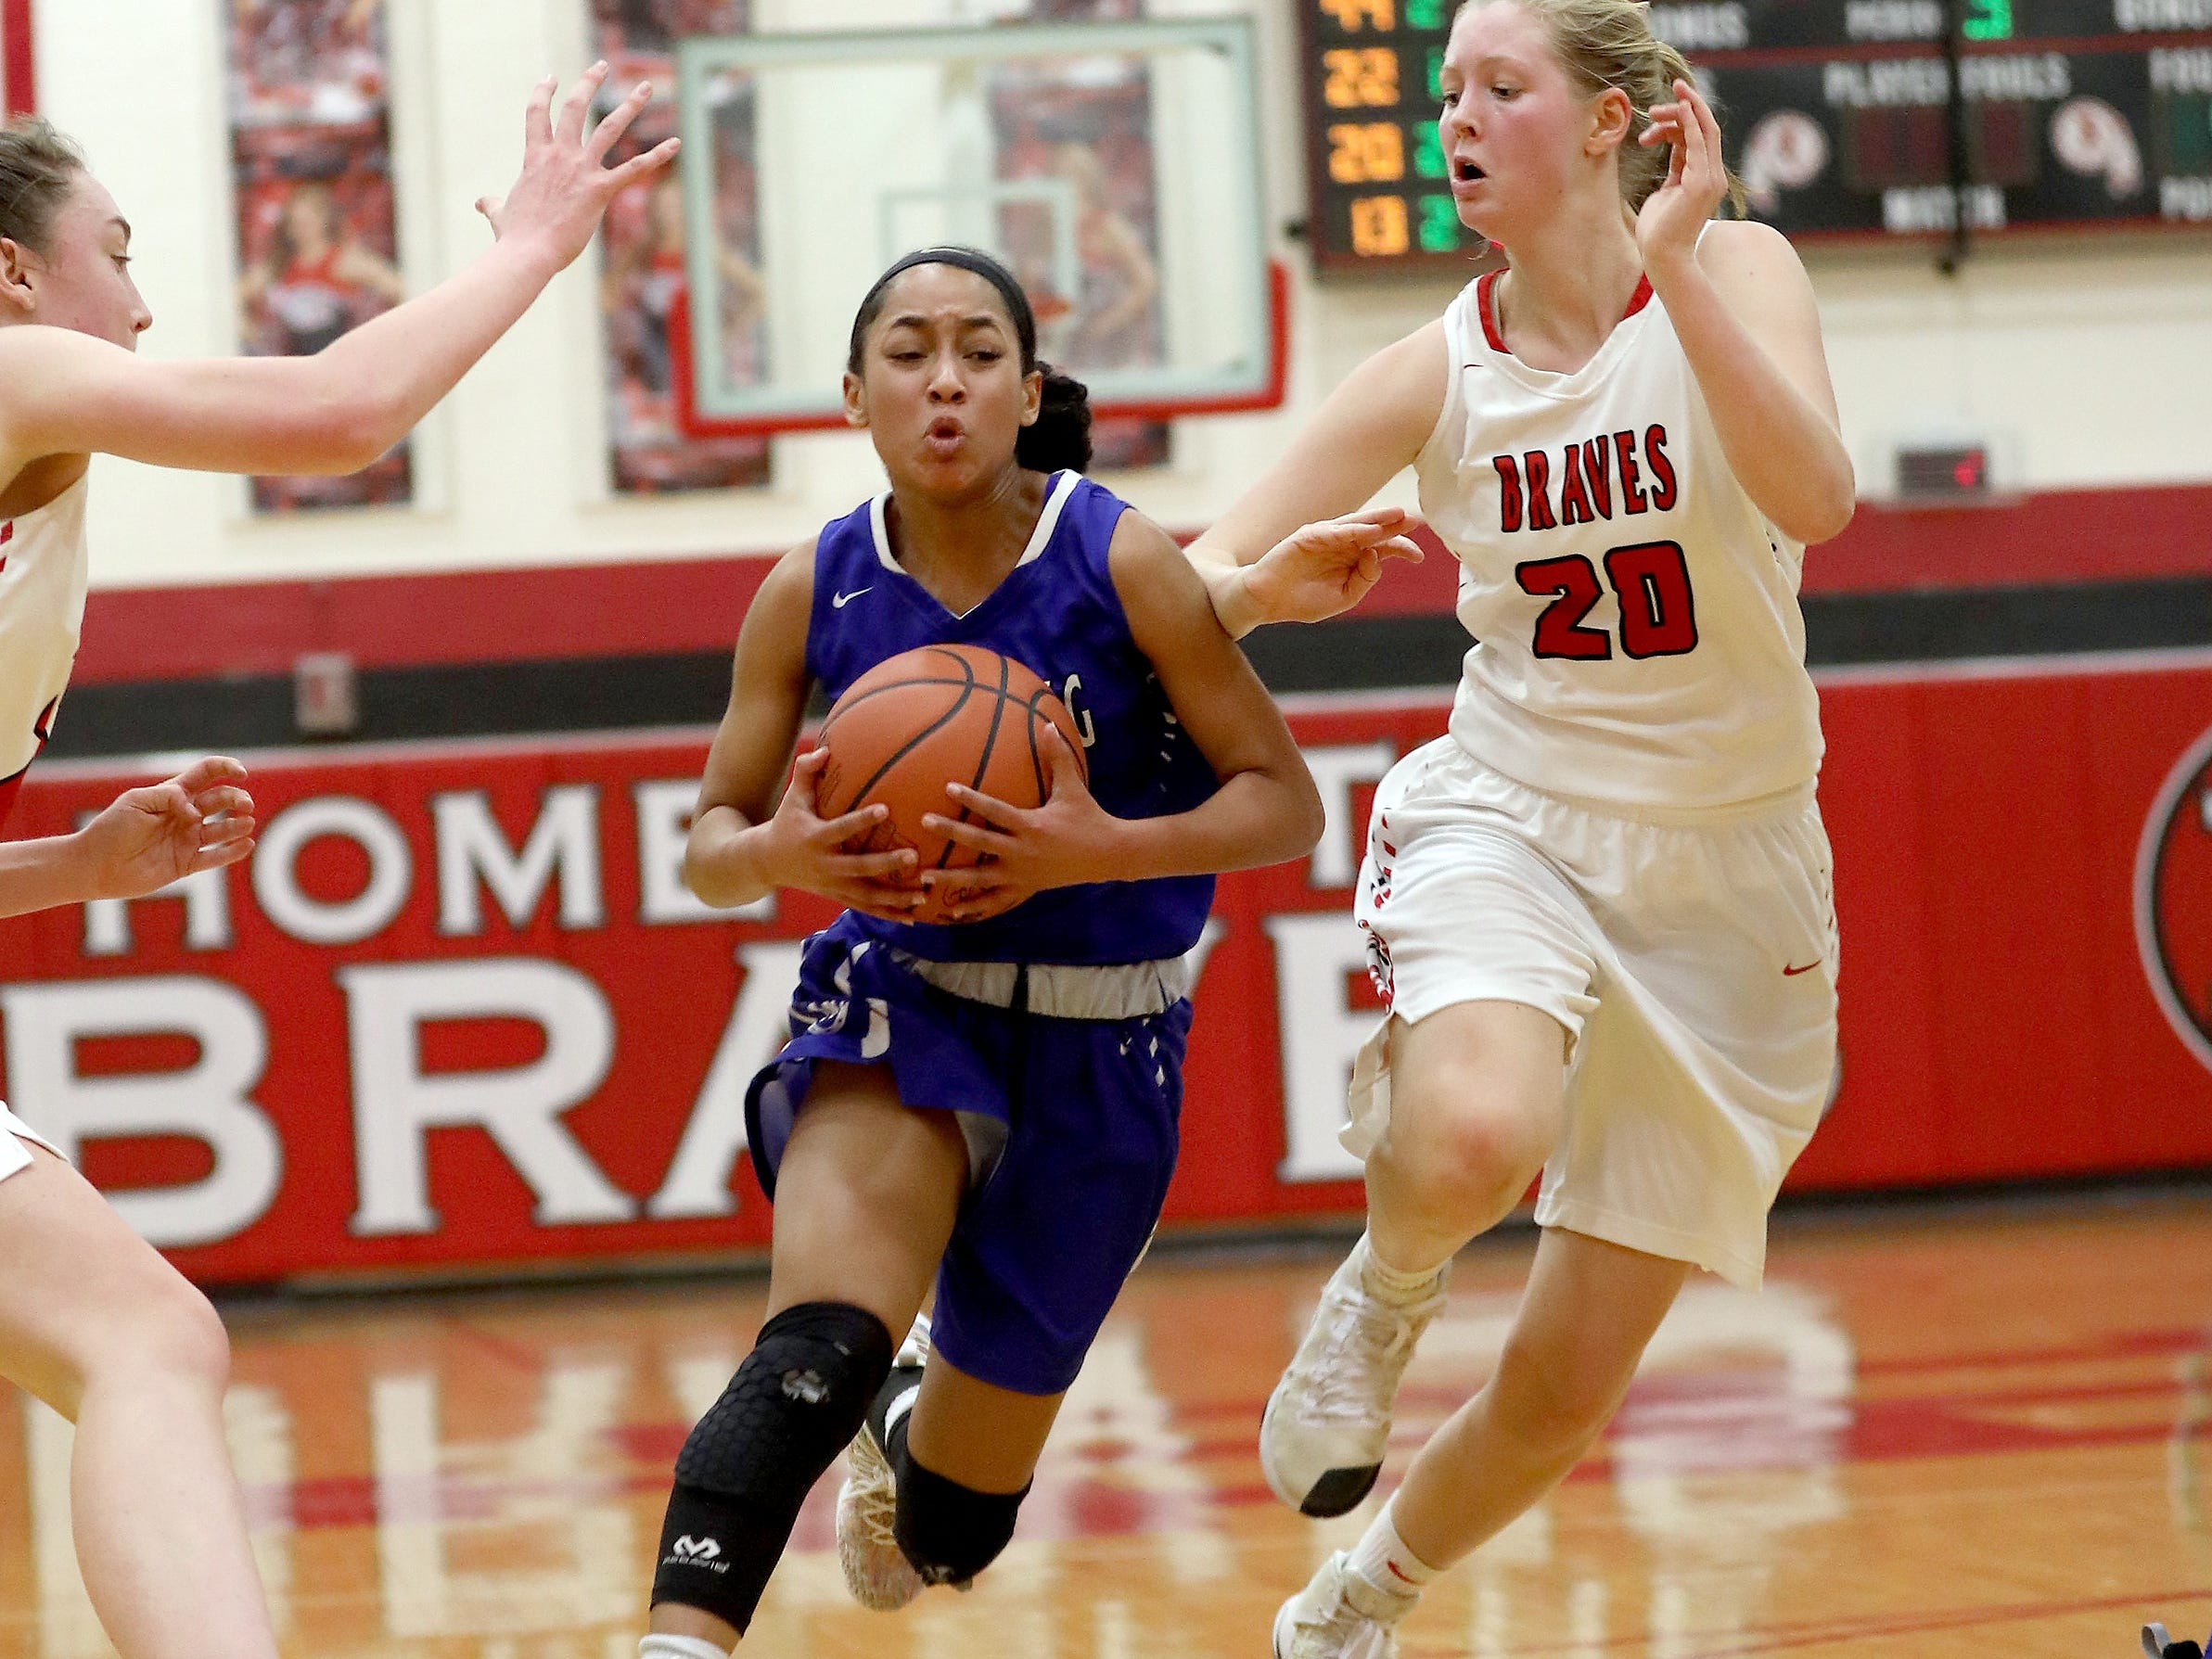 Wyoming guard Nia Kemper drives to the basket past Indian Hill guard Nina Price (20) during their basketball game , Thursday, Jan.10, 2019.